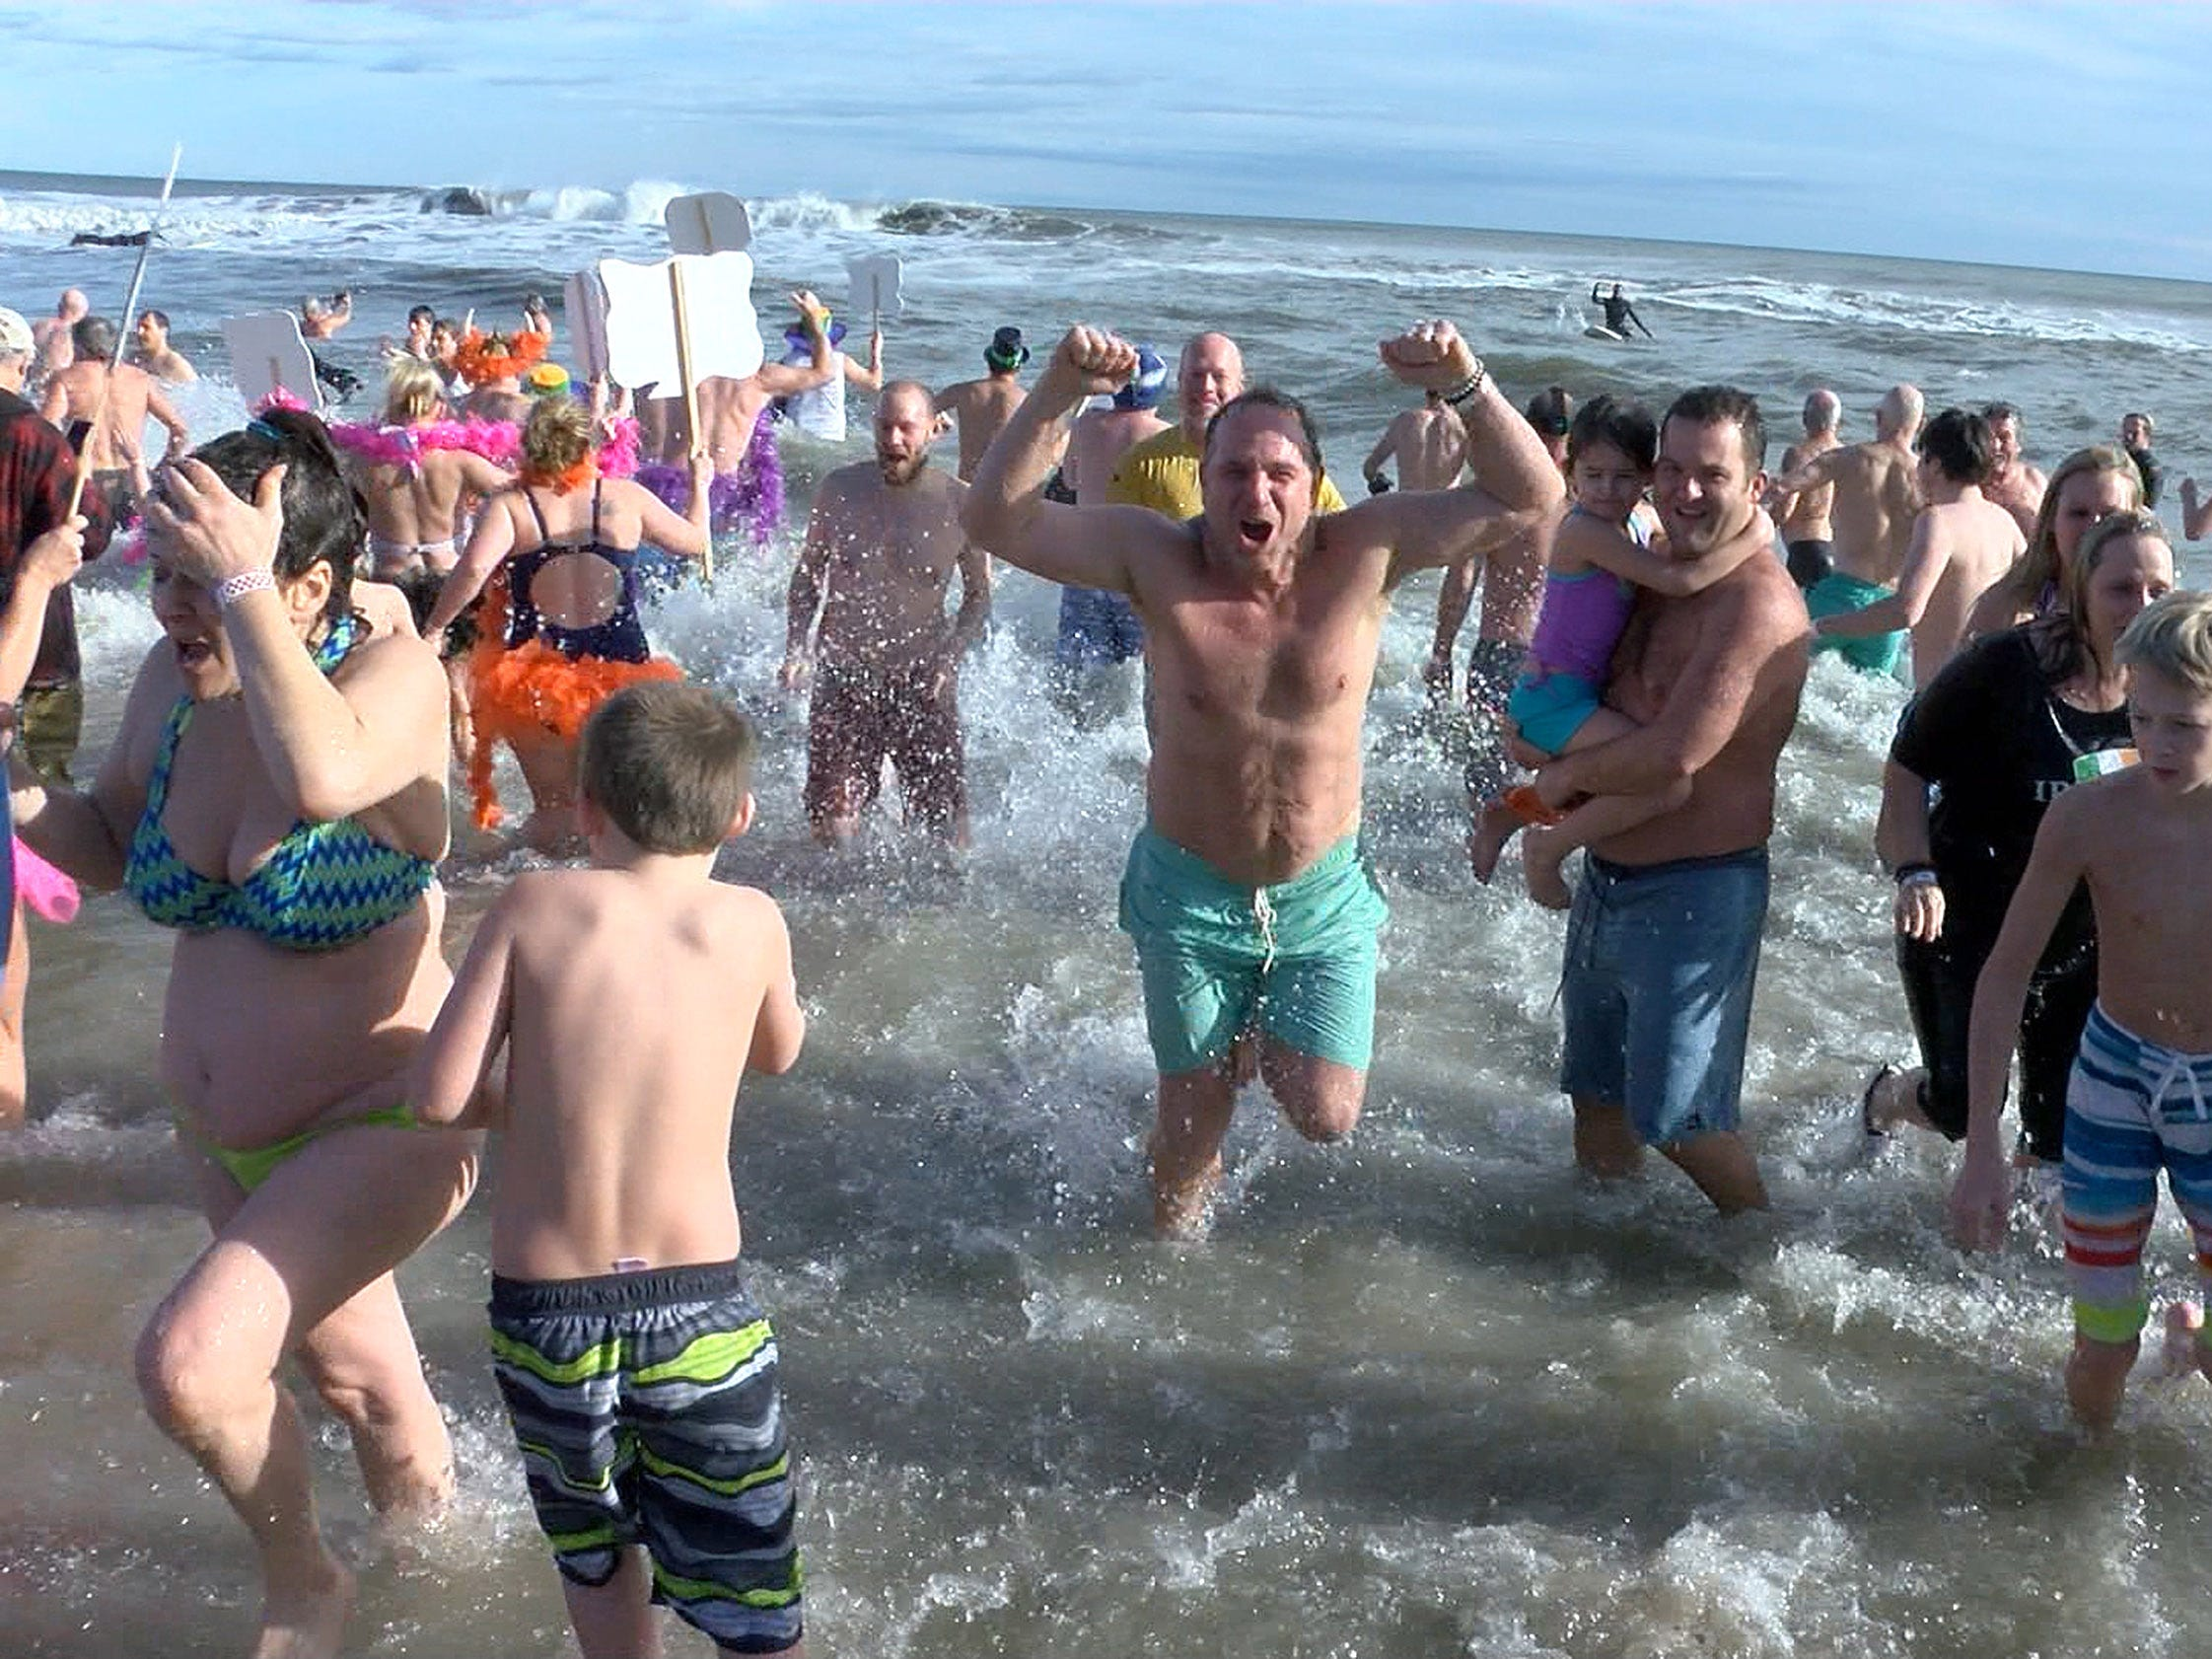 People celebrate after taking their New Years Day dip in the ocean off Asbury Park during the Sons of Ireland Polar Plunge Tuesday, January 1, 2019.